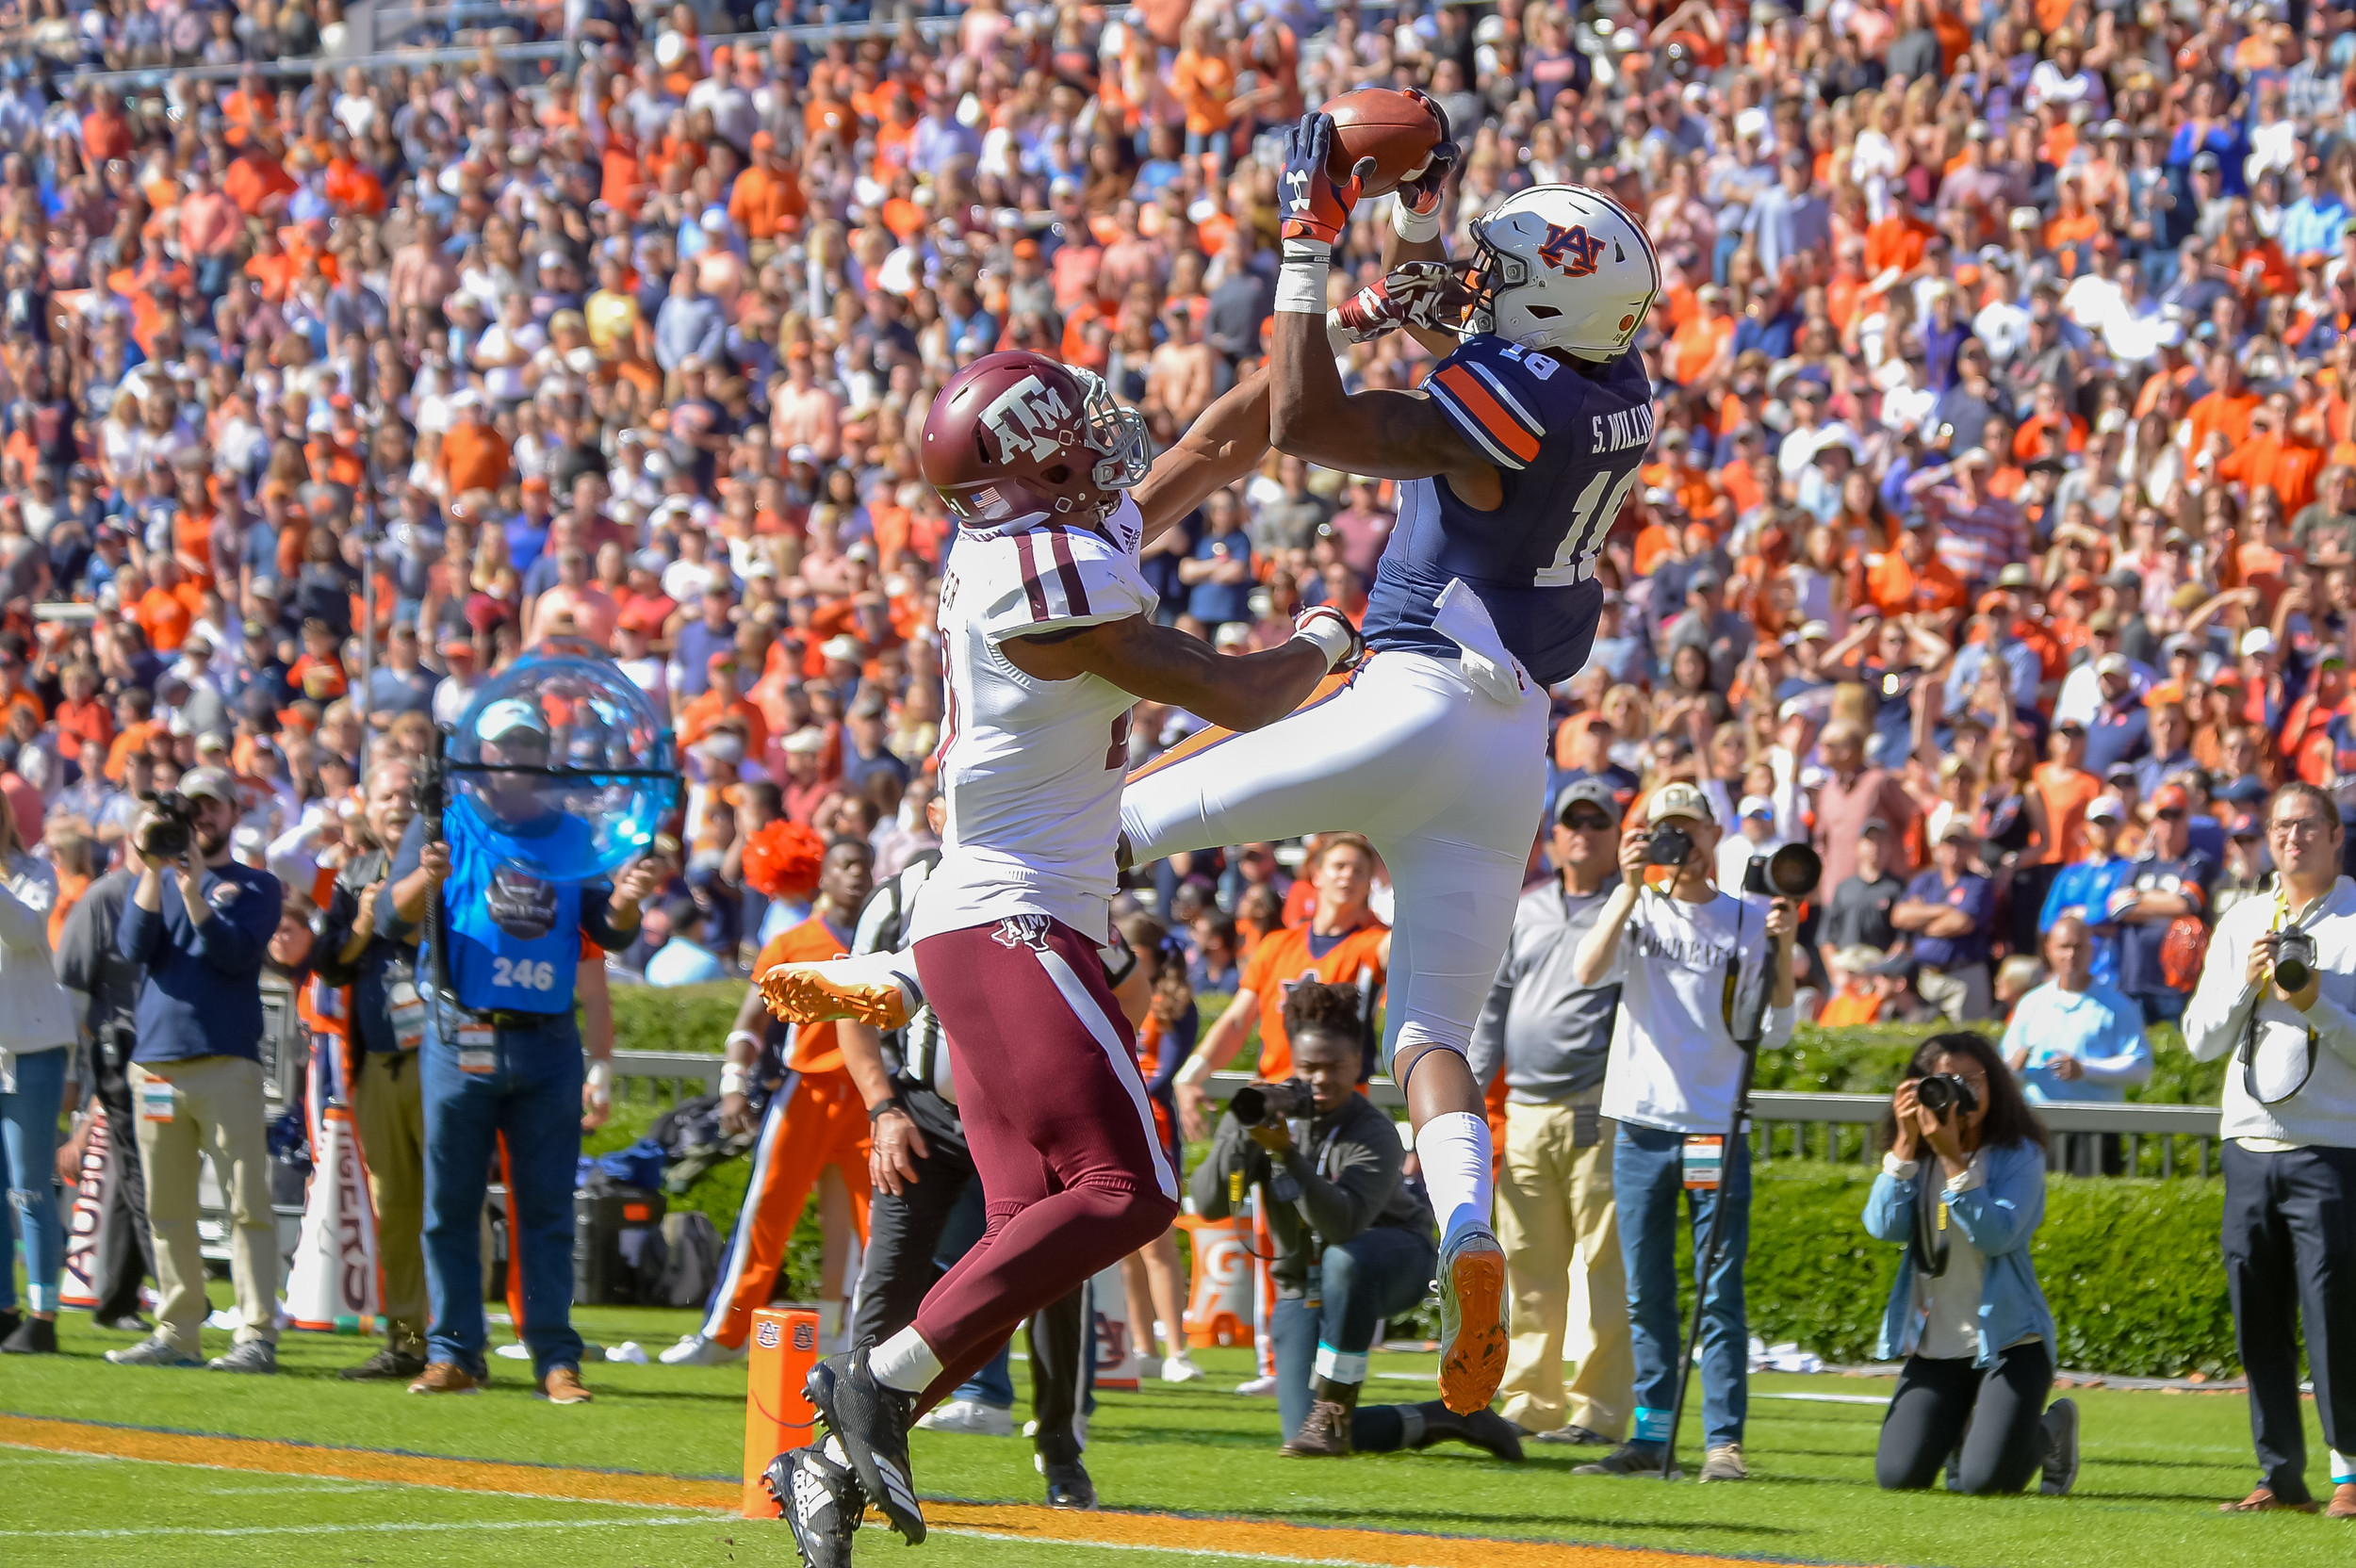 Auburn Tigers wide receiver Seth Williams (18) makes a catch above Texas A&M Aggies defensive back Charles Oliver (21) to make a catch during the first half of an NCAA football game against the Texas A&M Aggies Saturday, November 3, 2018, at Jordan-Hare Stadium in Auburn, Ala. (Photo by Jeff Johnsey)